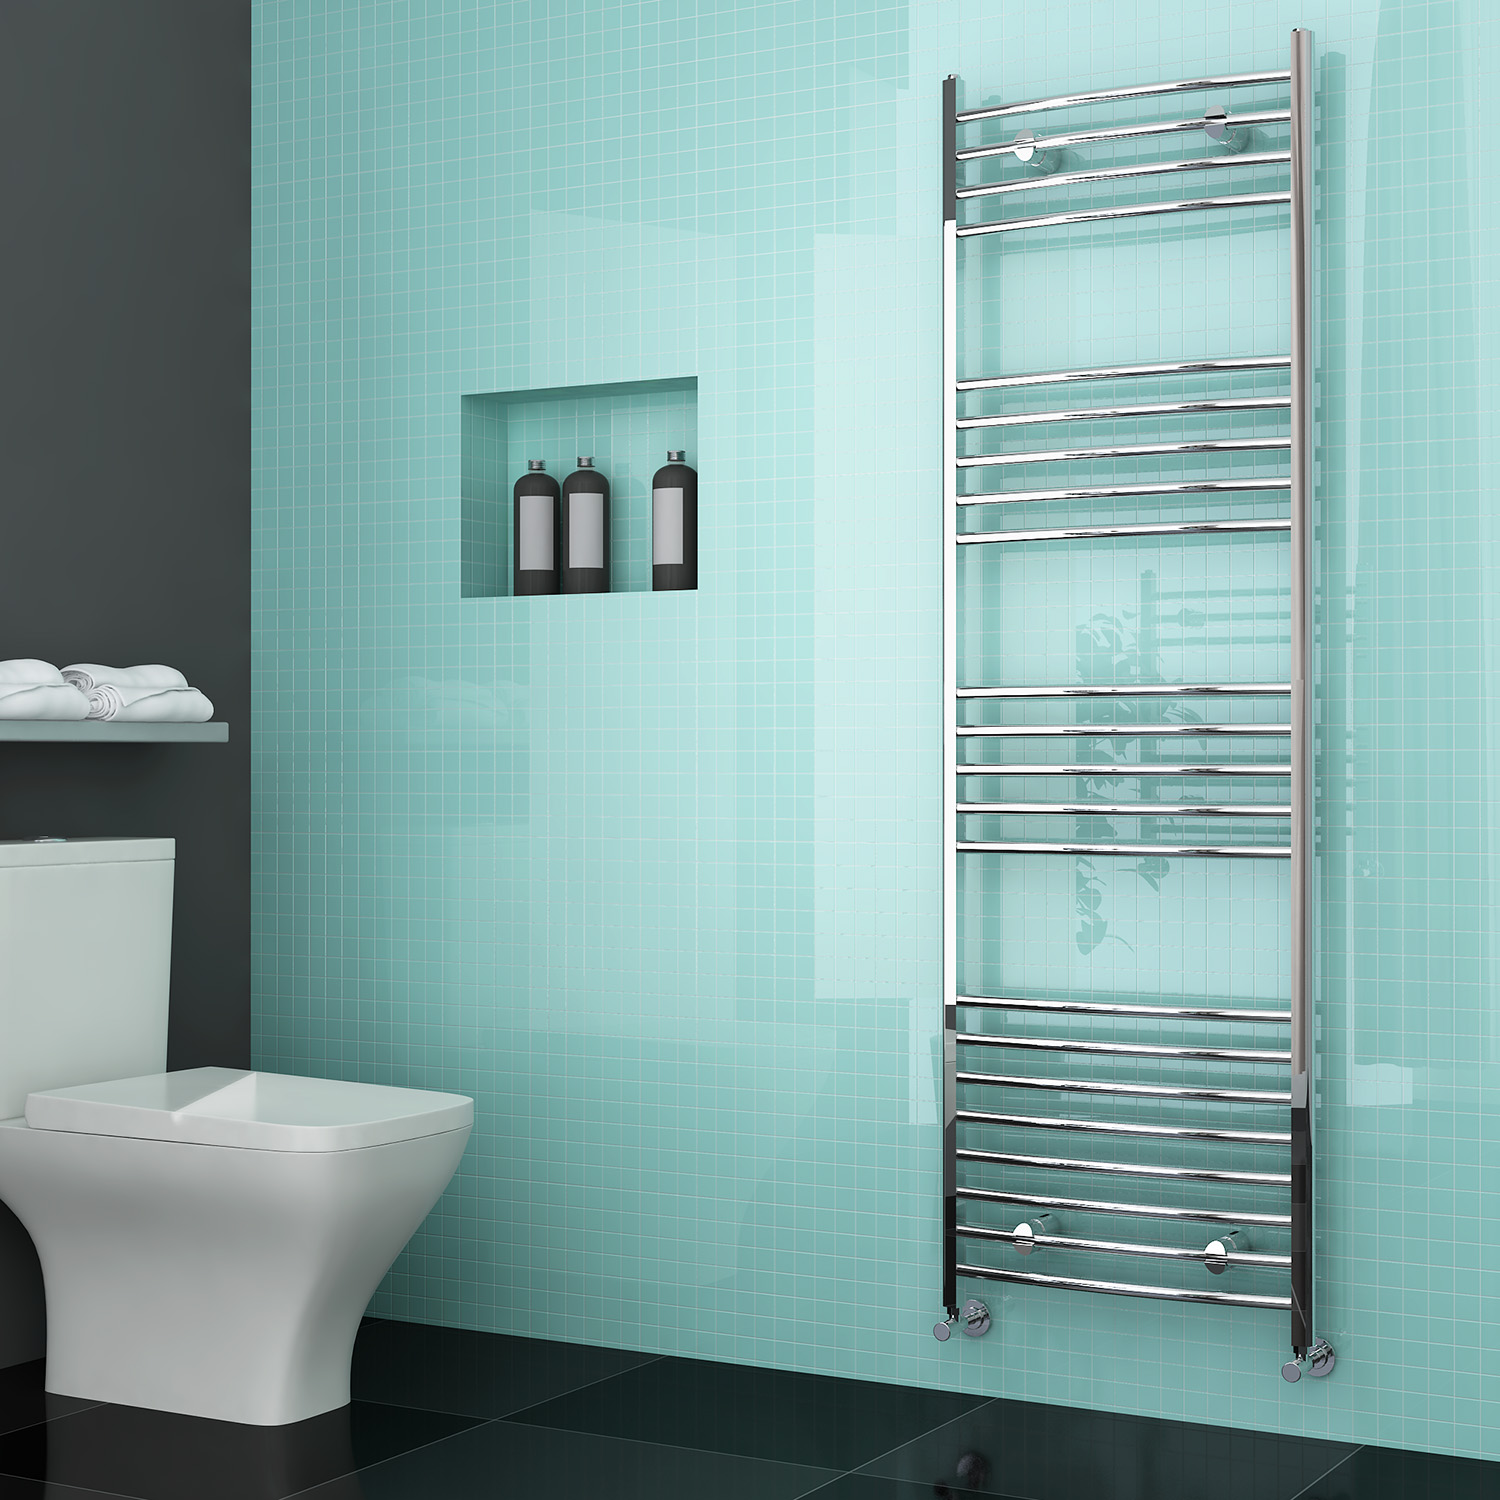 luxury curved chrome designer towel rail central heating bathroom radiator